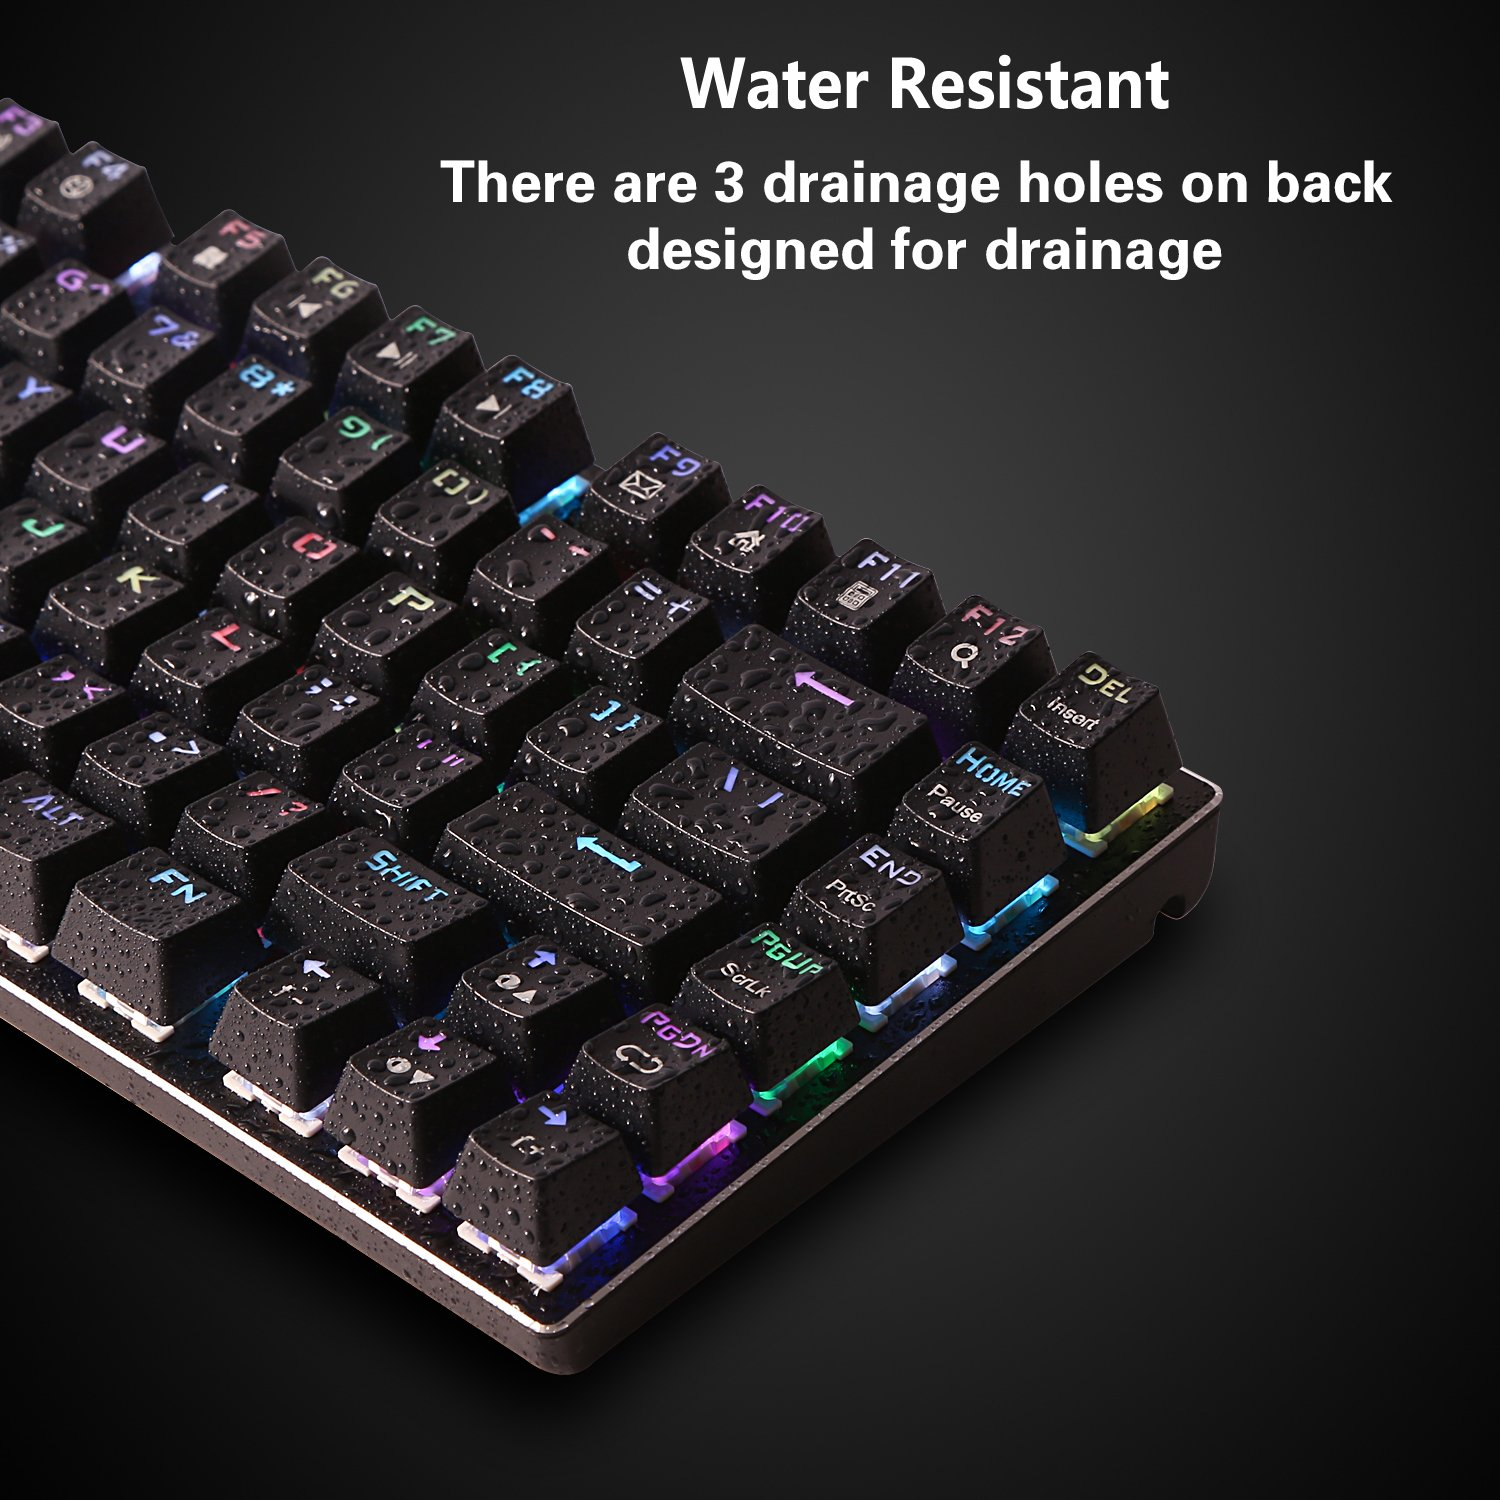 Black Compact 81 Keys Anti-Ghosting for Mac PC Water Resistant Blue Switch Tactile /& Clicky LED Backlit E-Element Z-88 RGB Mechanical Gaming Keyboard